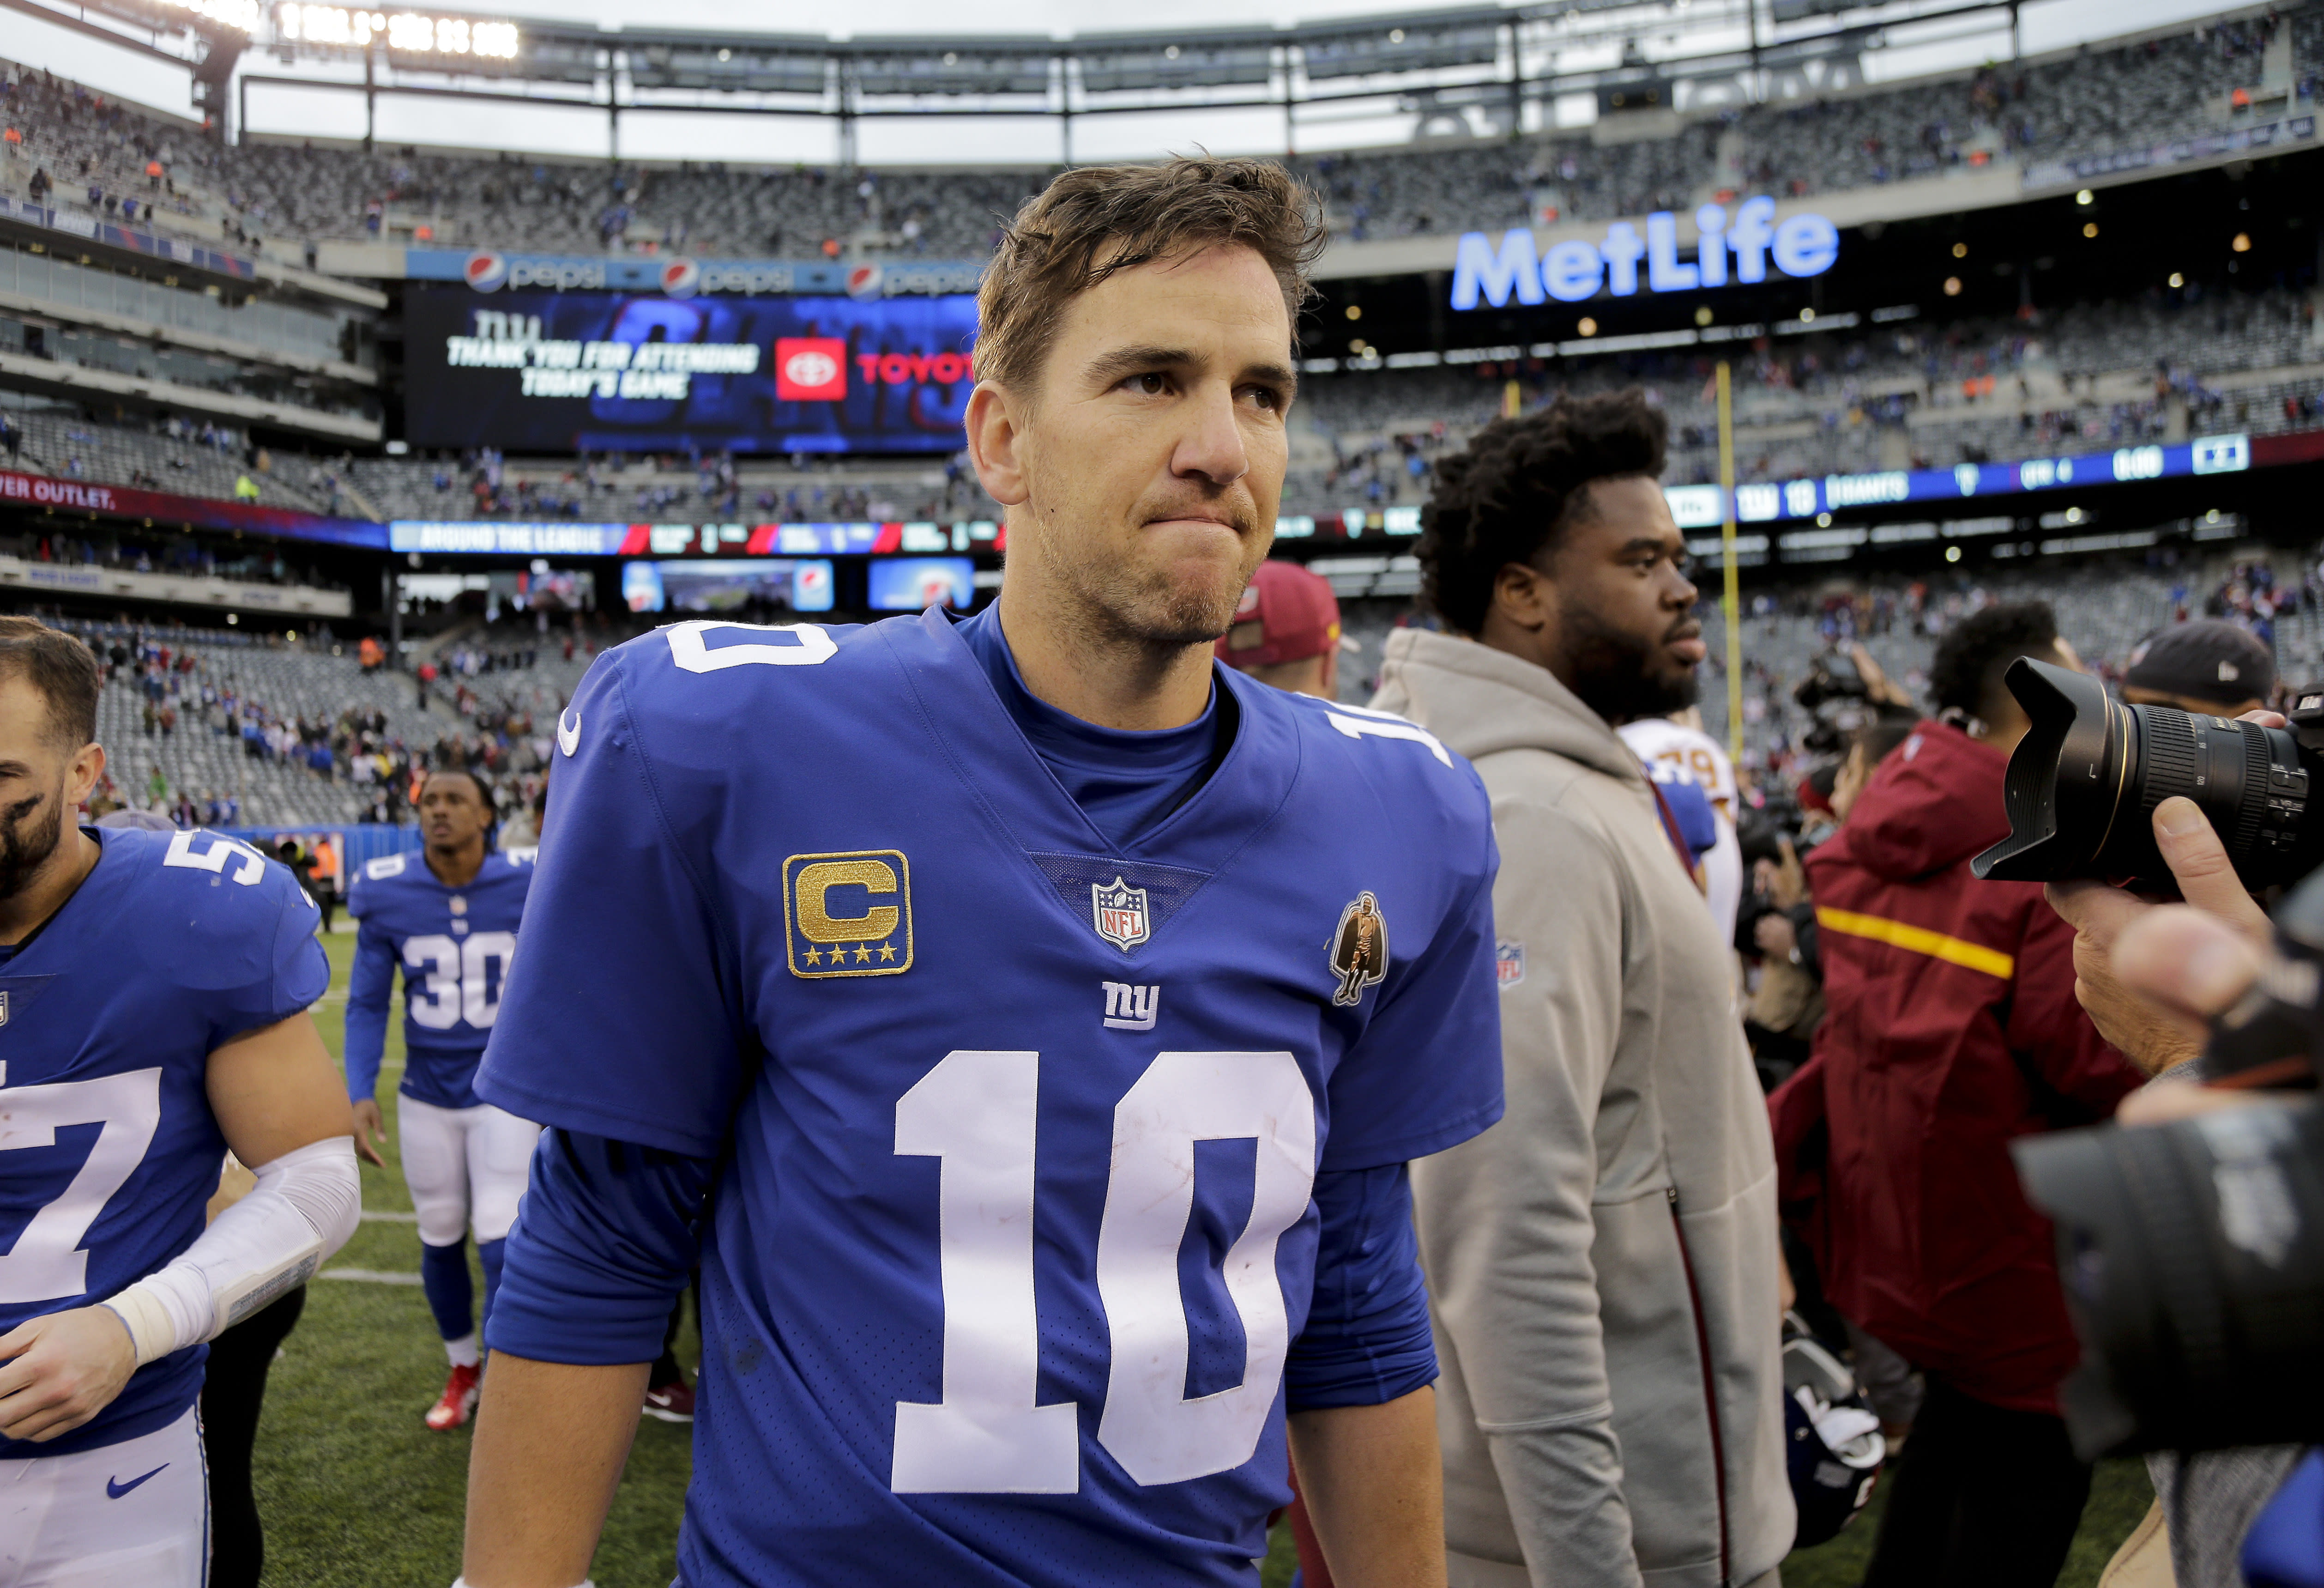 New York Giants quarterback Eli Manning (10) walks off the field after the Washington Redskins beat the Giants 20-13 on Sunday in East Rutherford, N.J. (AP)